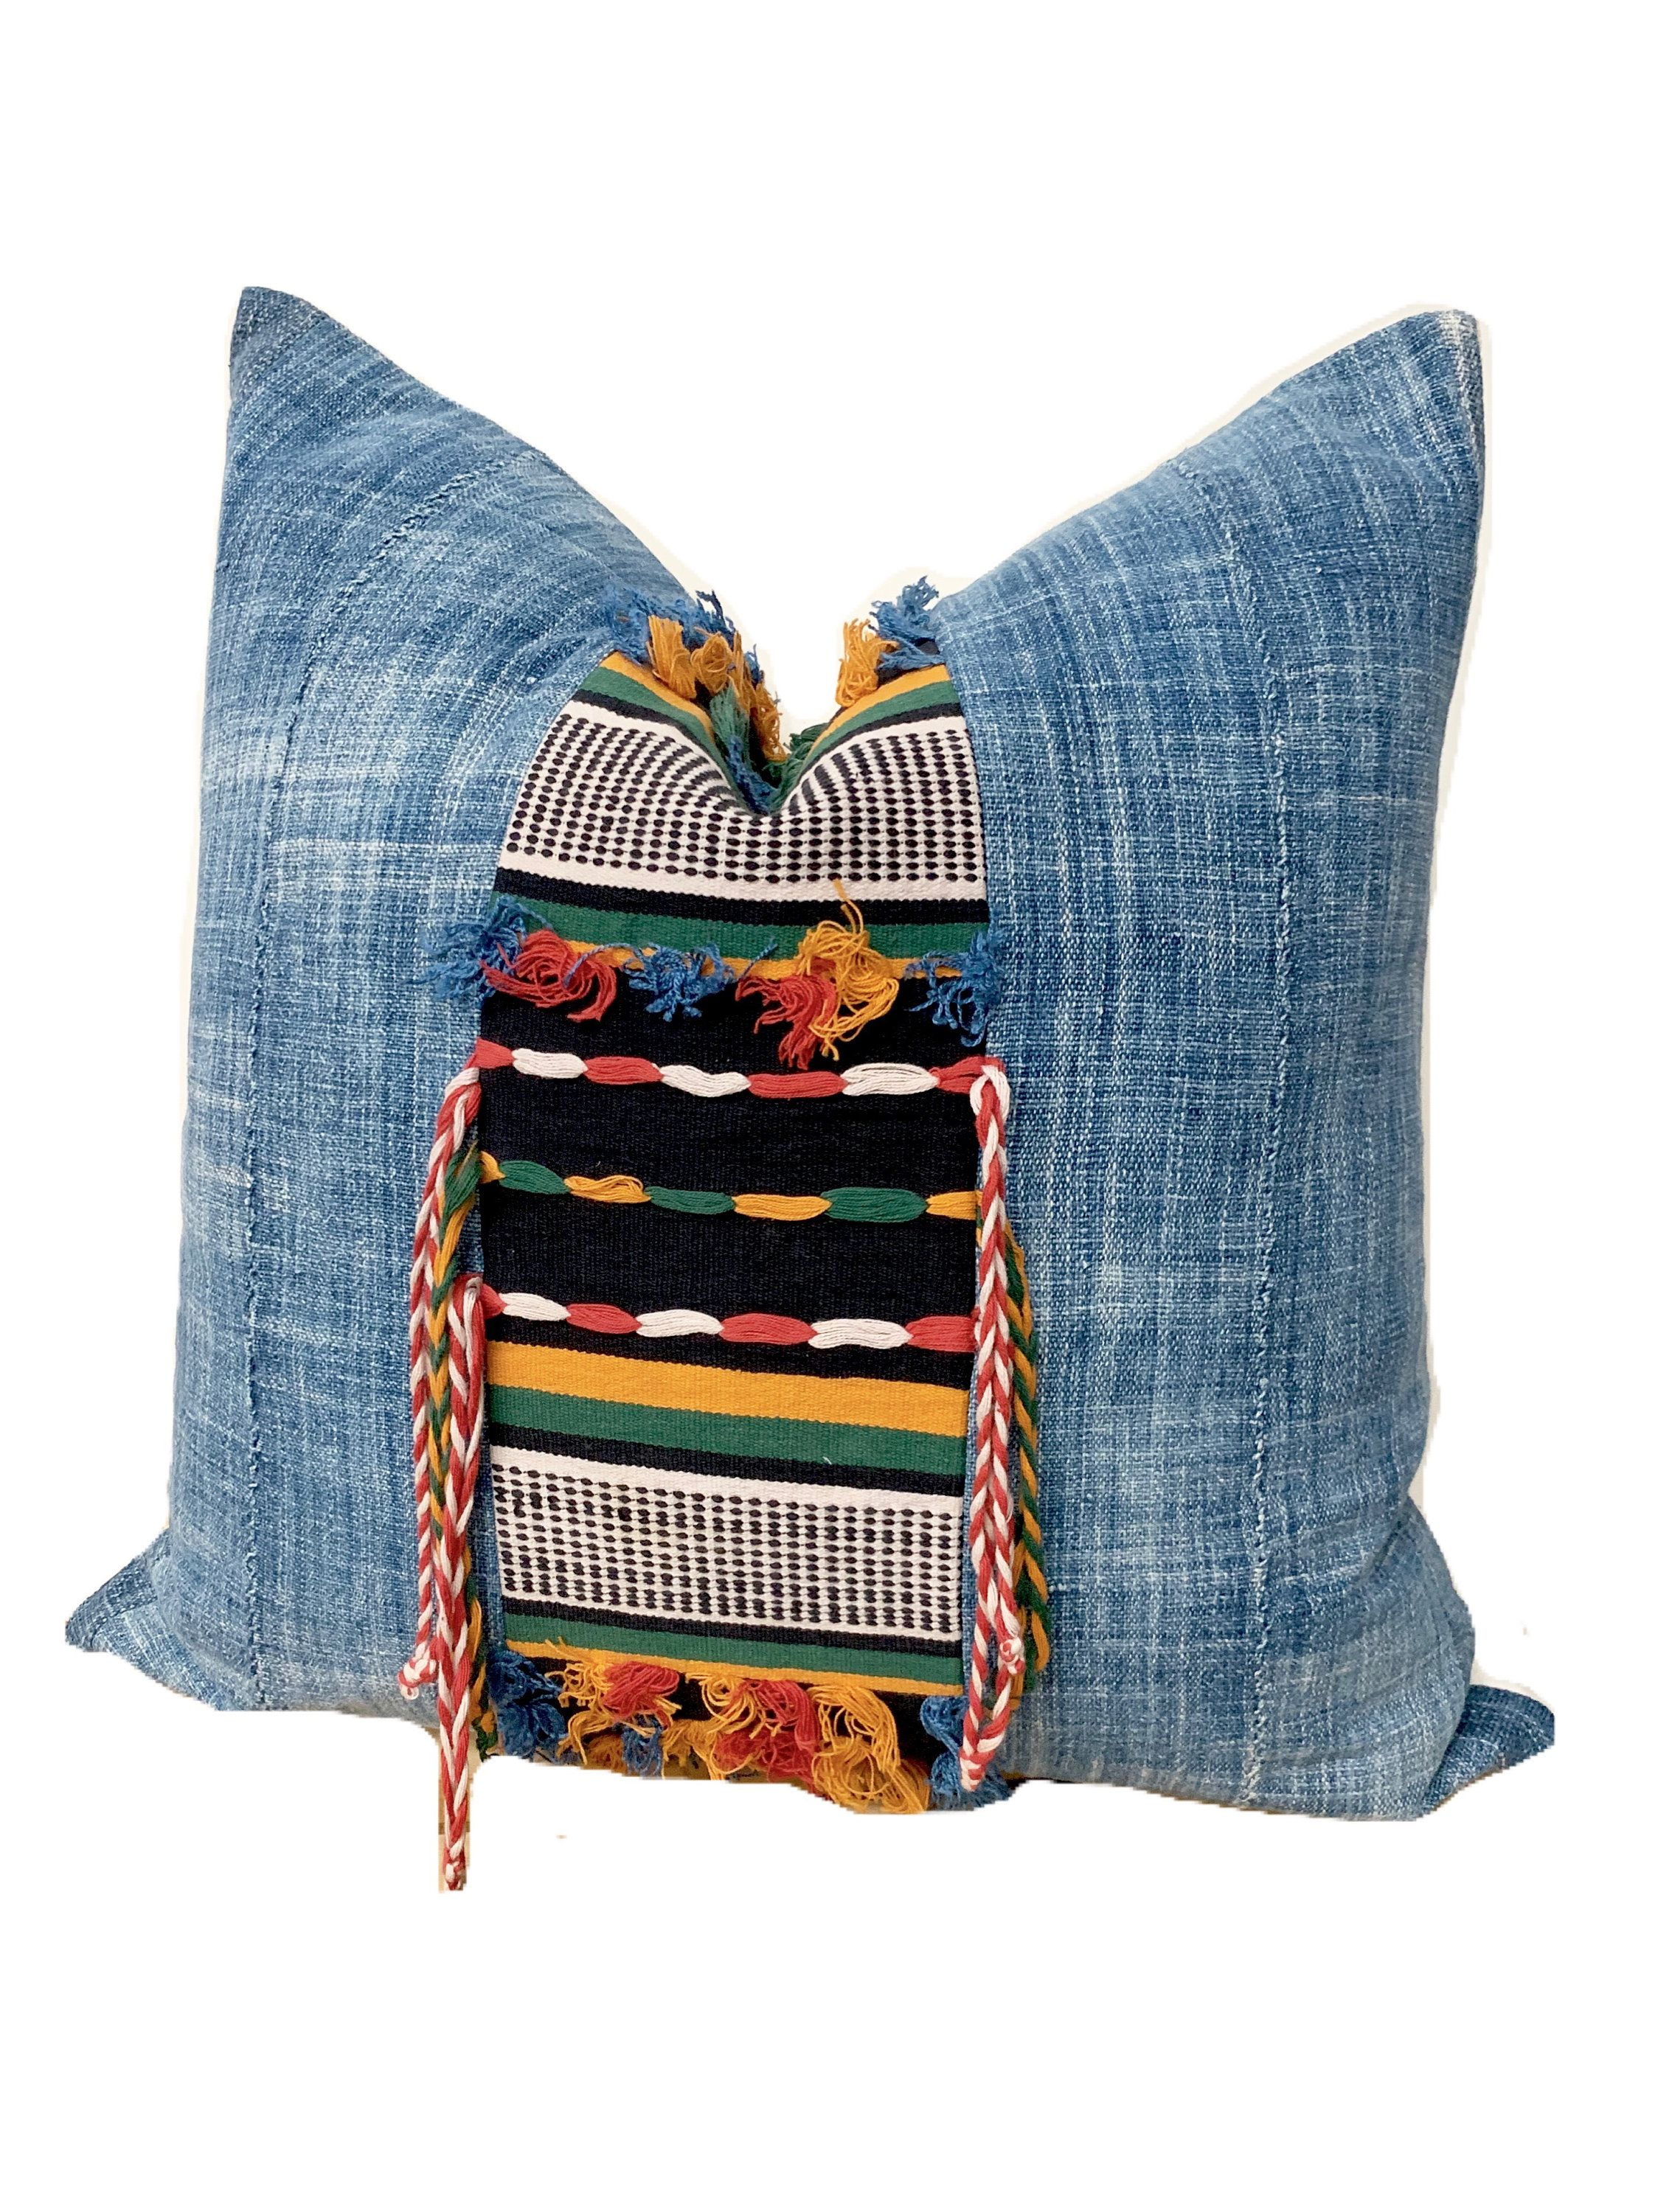 Mud Cloth Pillow Cover 24 inch square African Indigo Fulani   Etsy